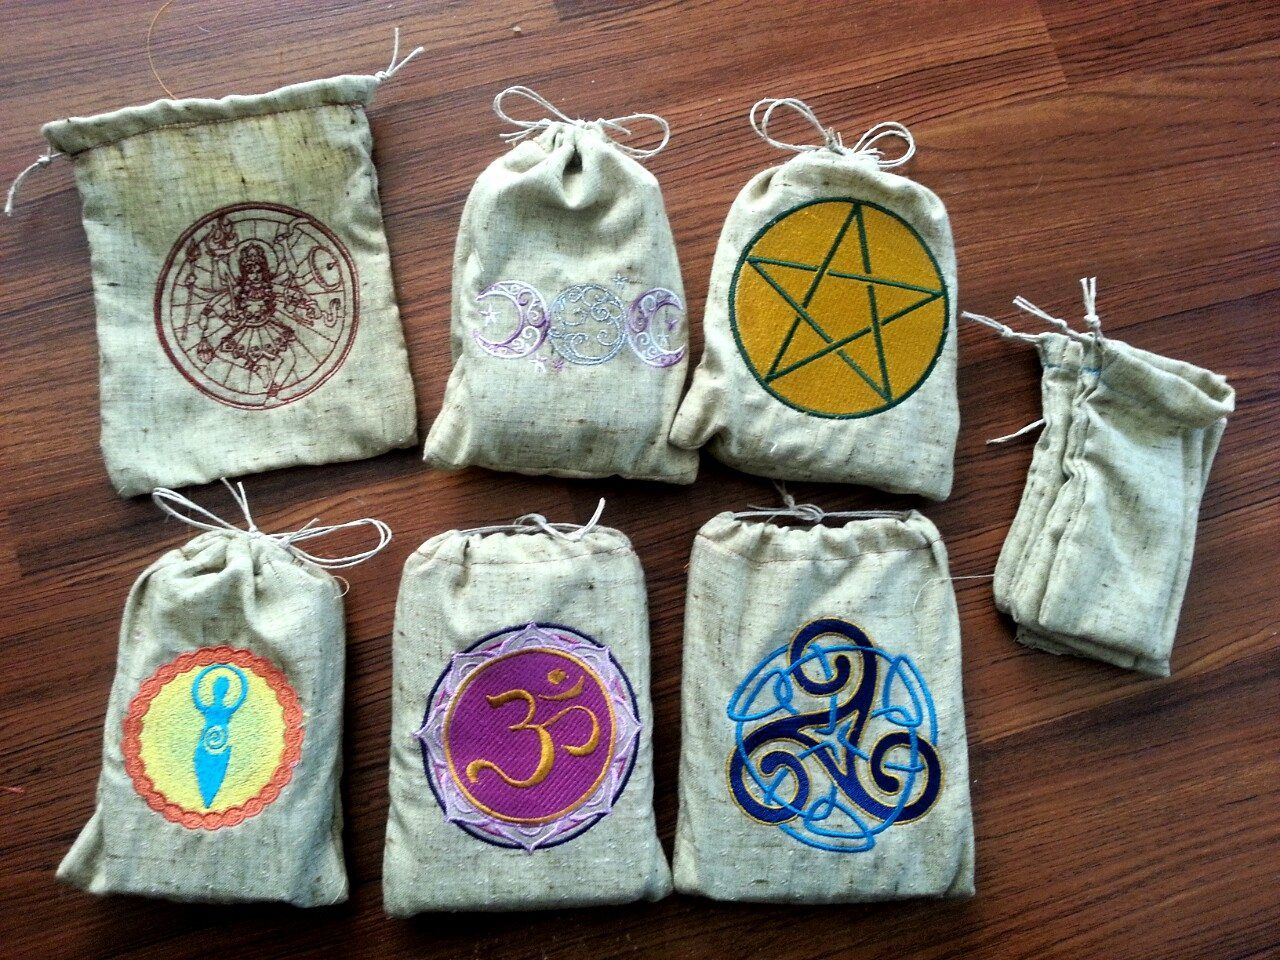 Spell/tarot bags for my travel trip across the country.  The large bags can be for tarot cards, stones, or used as spell bags.  The small bags can be for spells or for herbal baths.